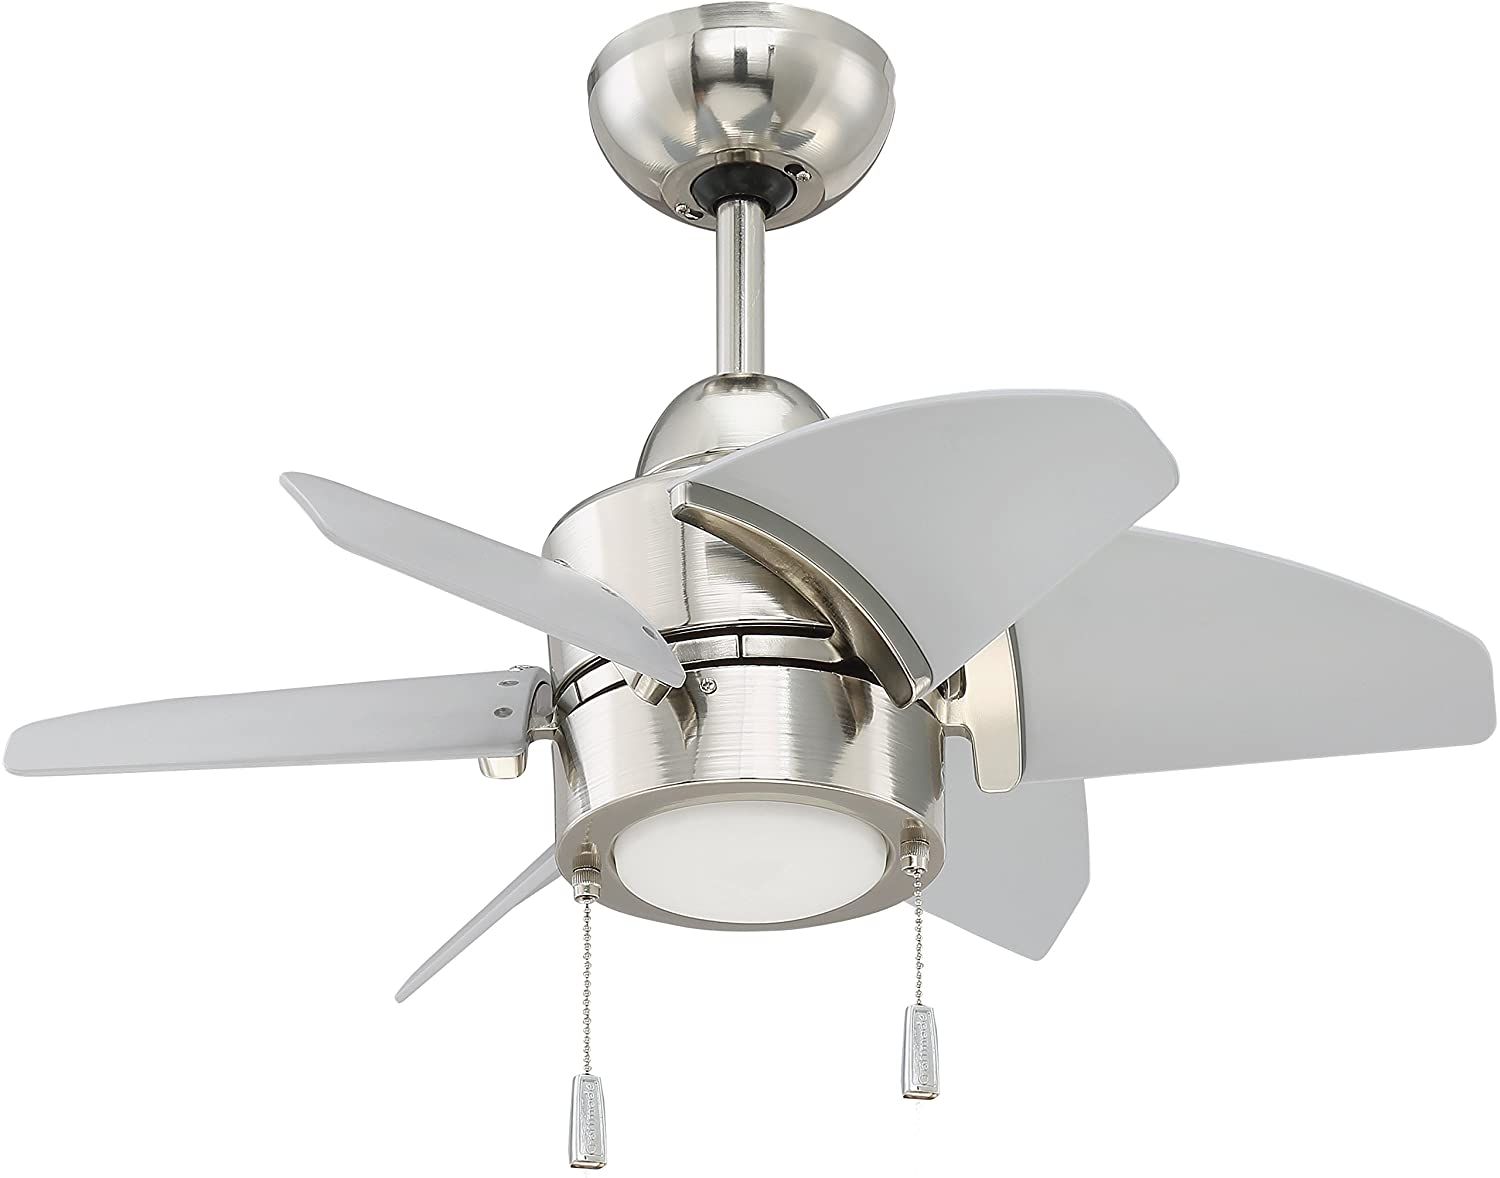 Craftmade Outdoor Ceiling Fan with LED Light PPL24PLN6 Propel 24 Inch for Patio, Polished Nickel